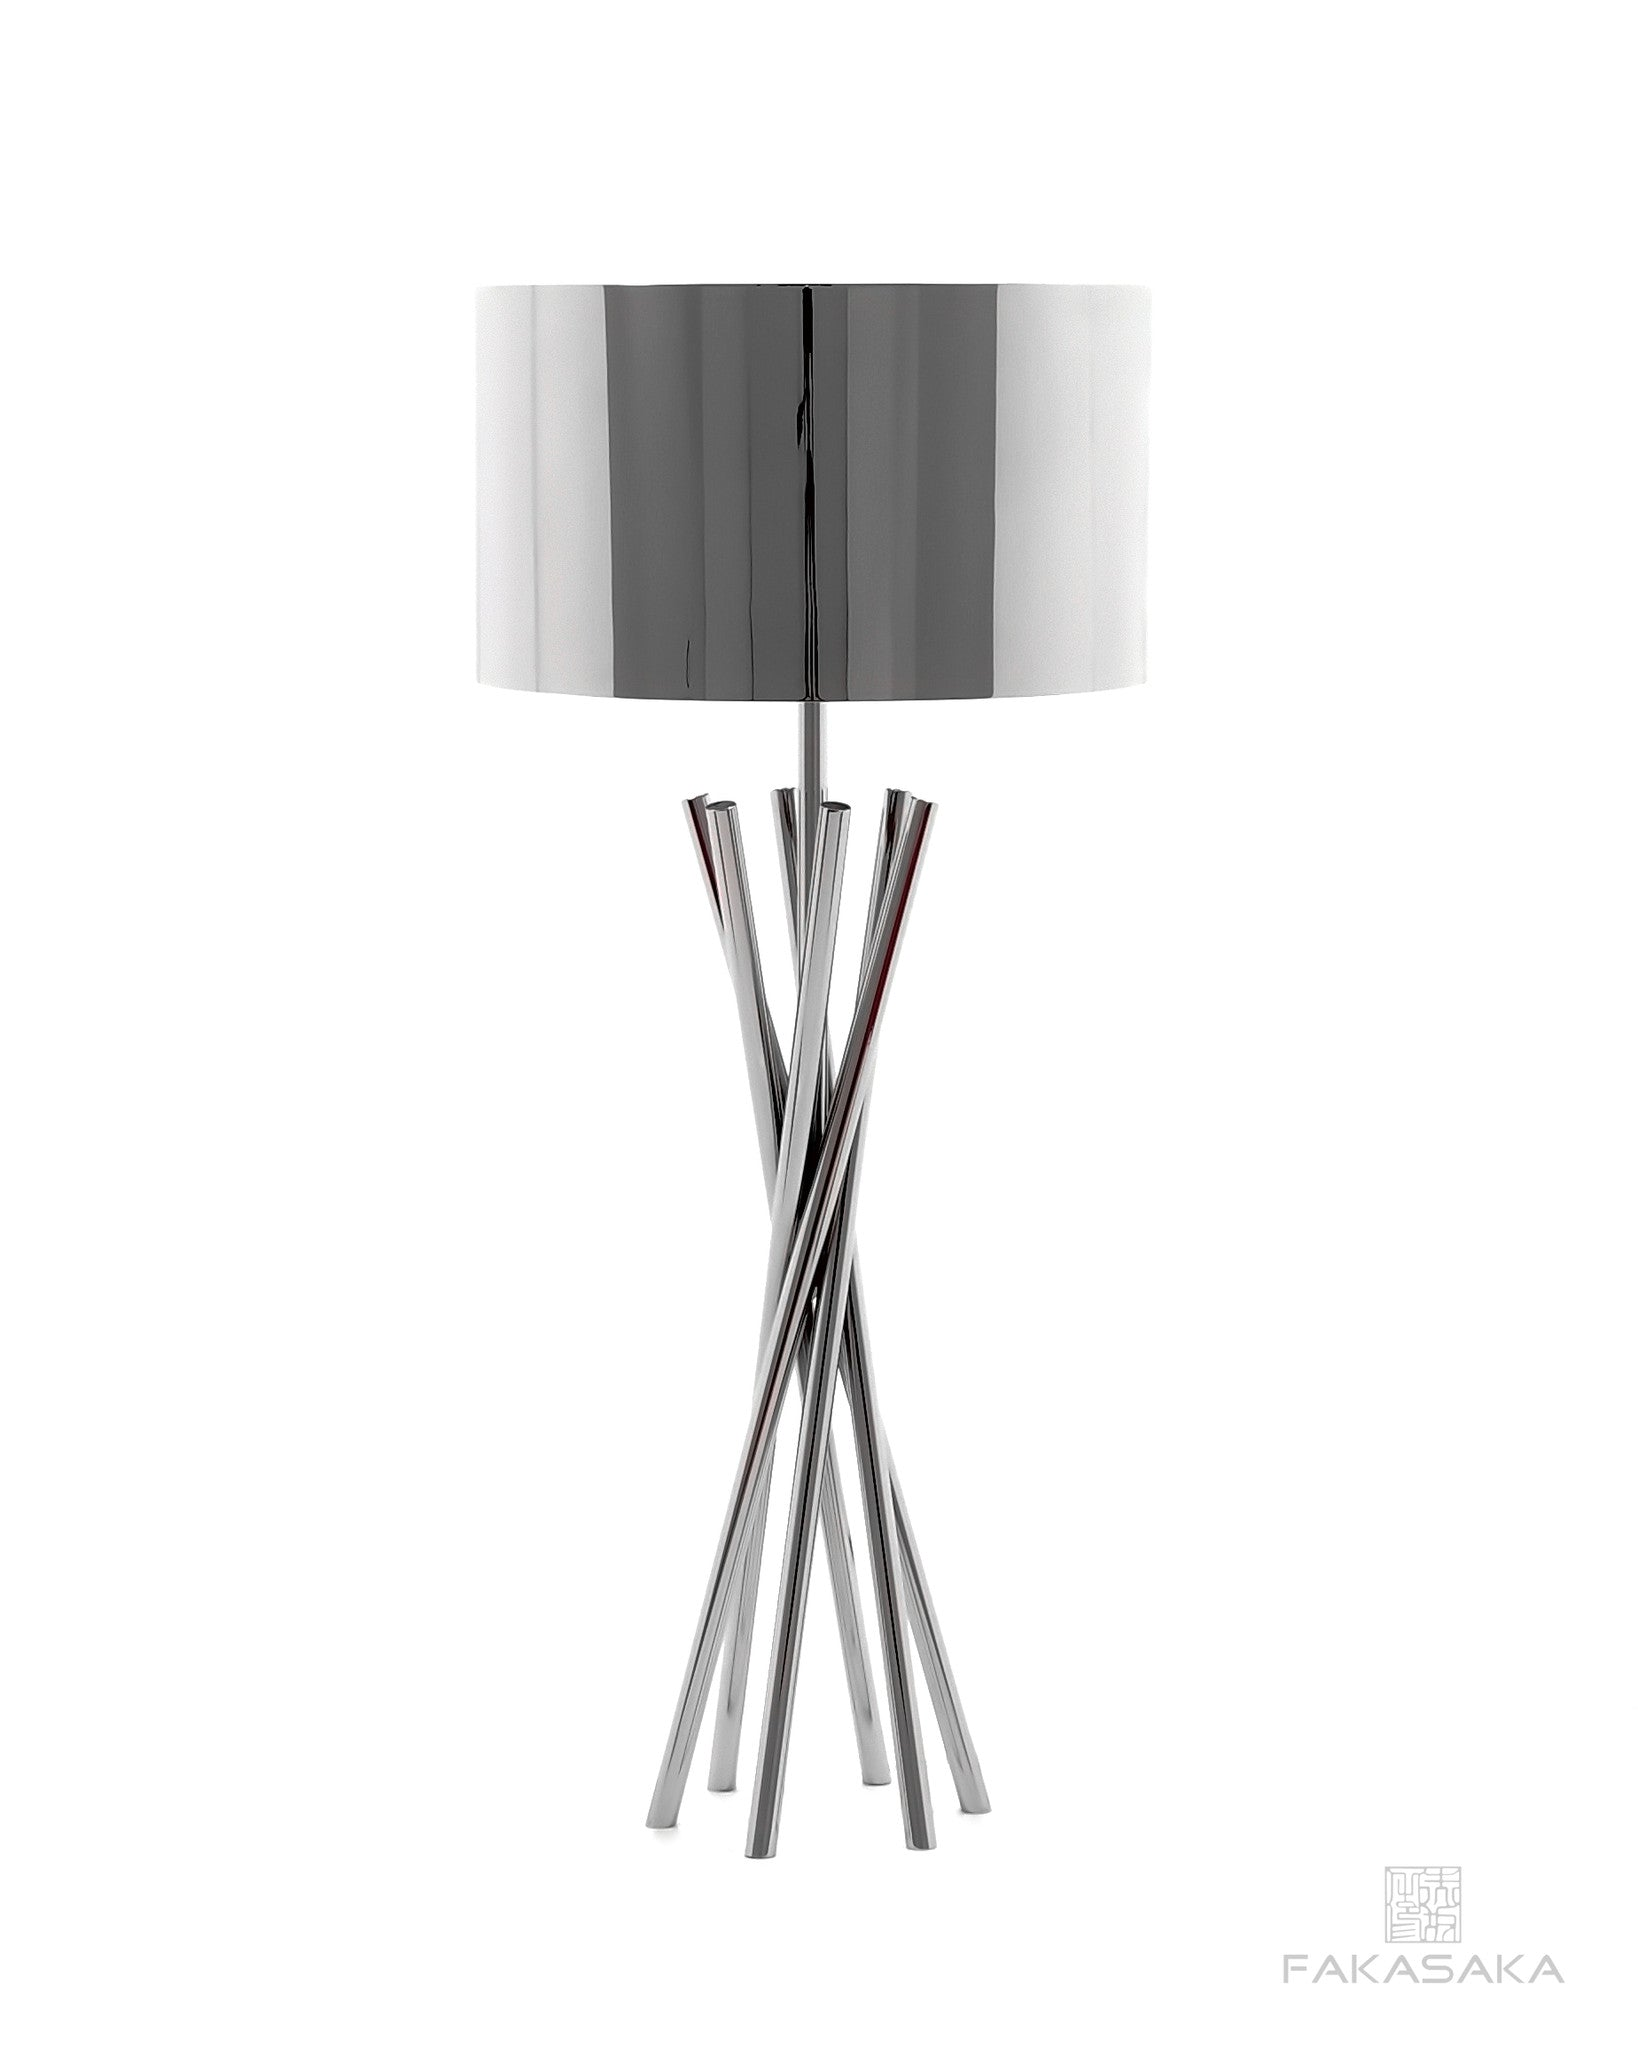 FA31 TABLE LAMP<br><br>BRIGHT NICKEL